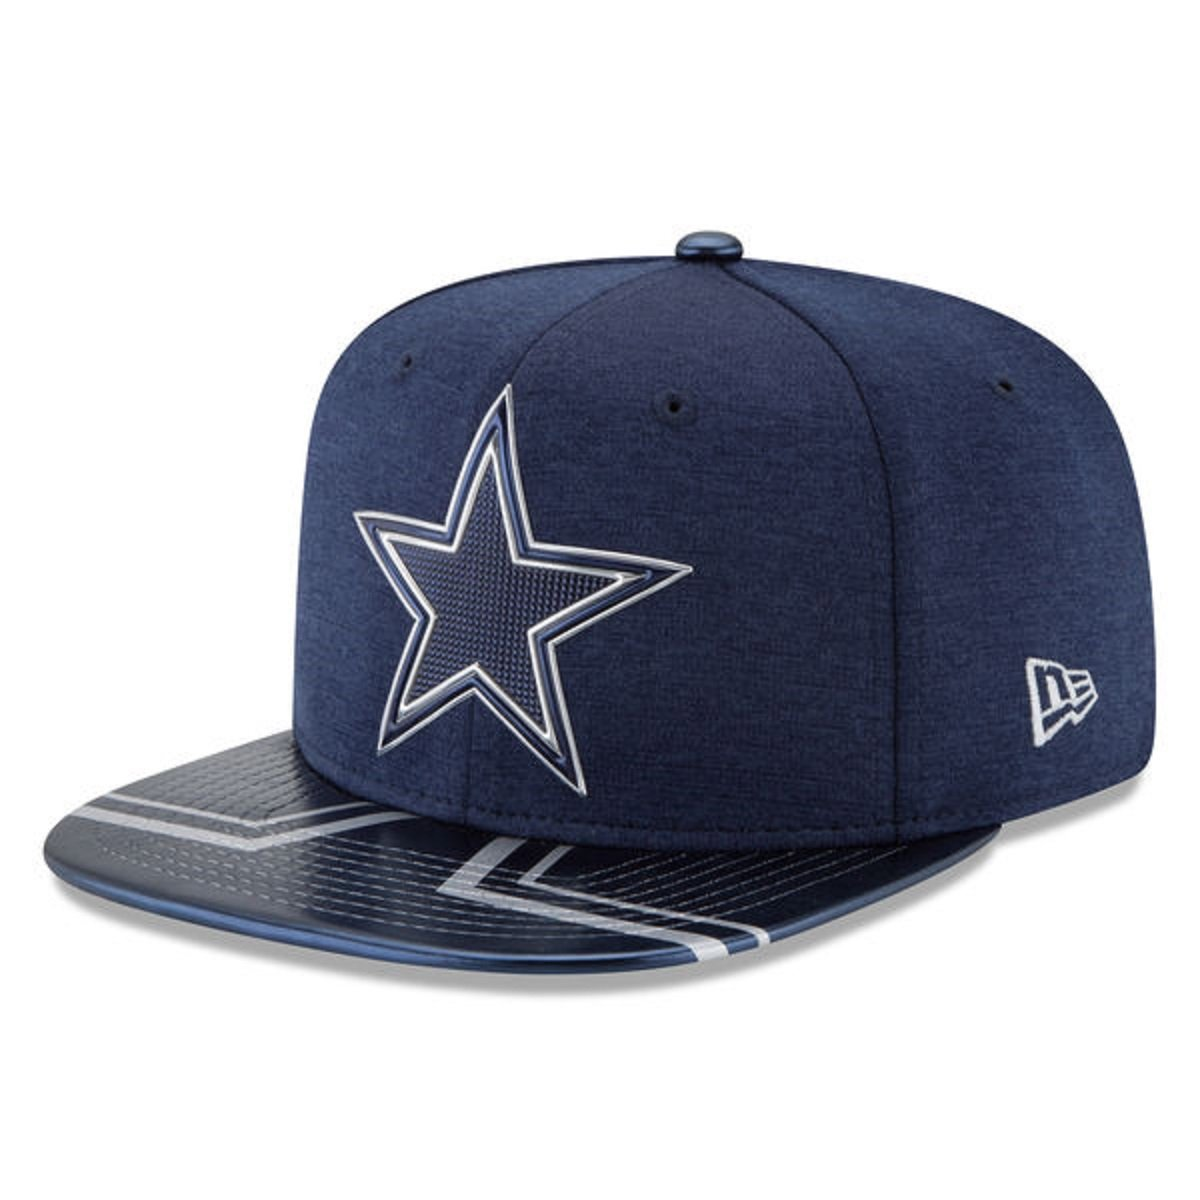 100% Authentic NWT, Dallas Cowboys '17 Draft OnStage 9Fifty SnapBack